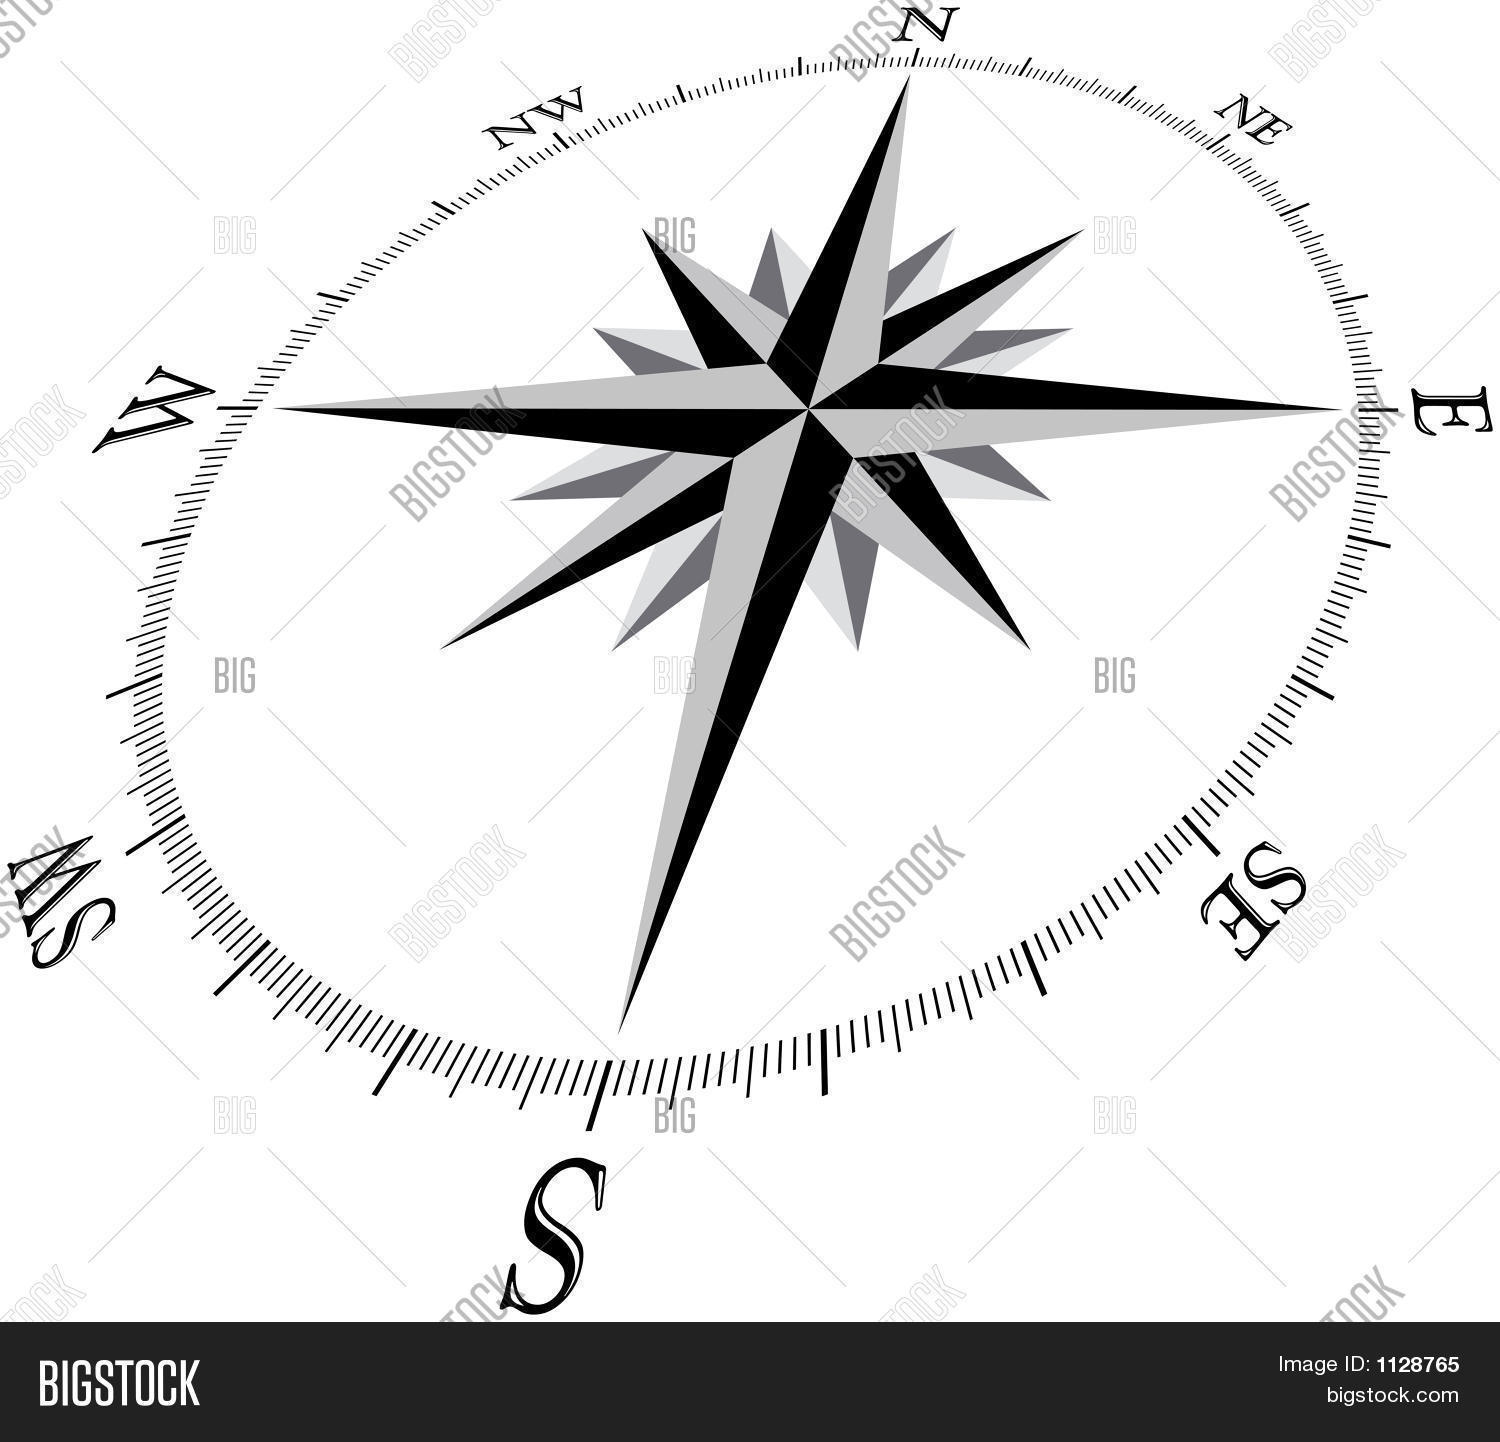 adventure,ancient,captain,cardinal,compass,compass rose,degree,dial,direction,east,exploration,explore,geography,globe,gps,guidance,guide,hiking,instrument,latitude,longitude,map,maritime,navigate,navigation,north,ocean,orientation,outdoor,path,pirate,point,pointer,pole,position,rose,sail,sea,south,star,travel,trek,vintage,voyage,way,west,wheel,wind,windrose